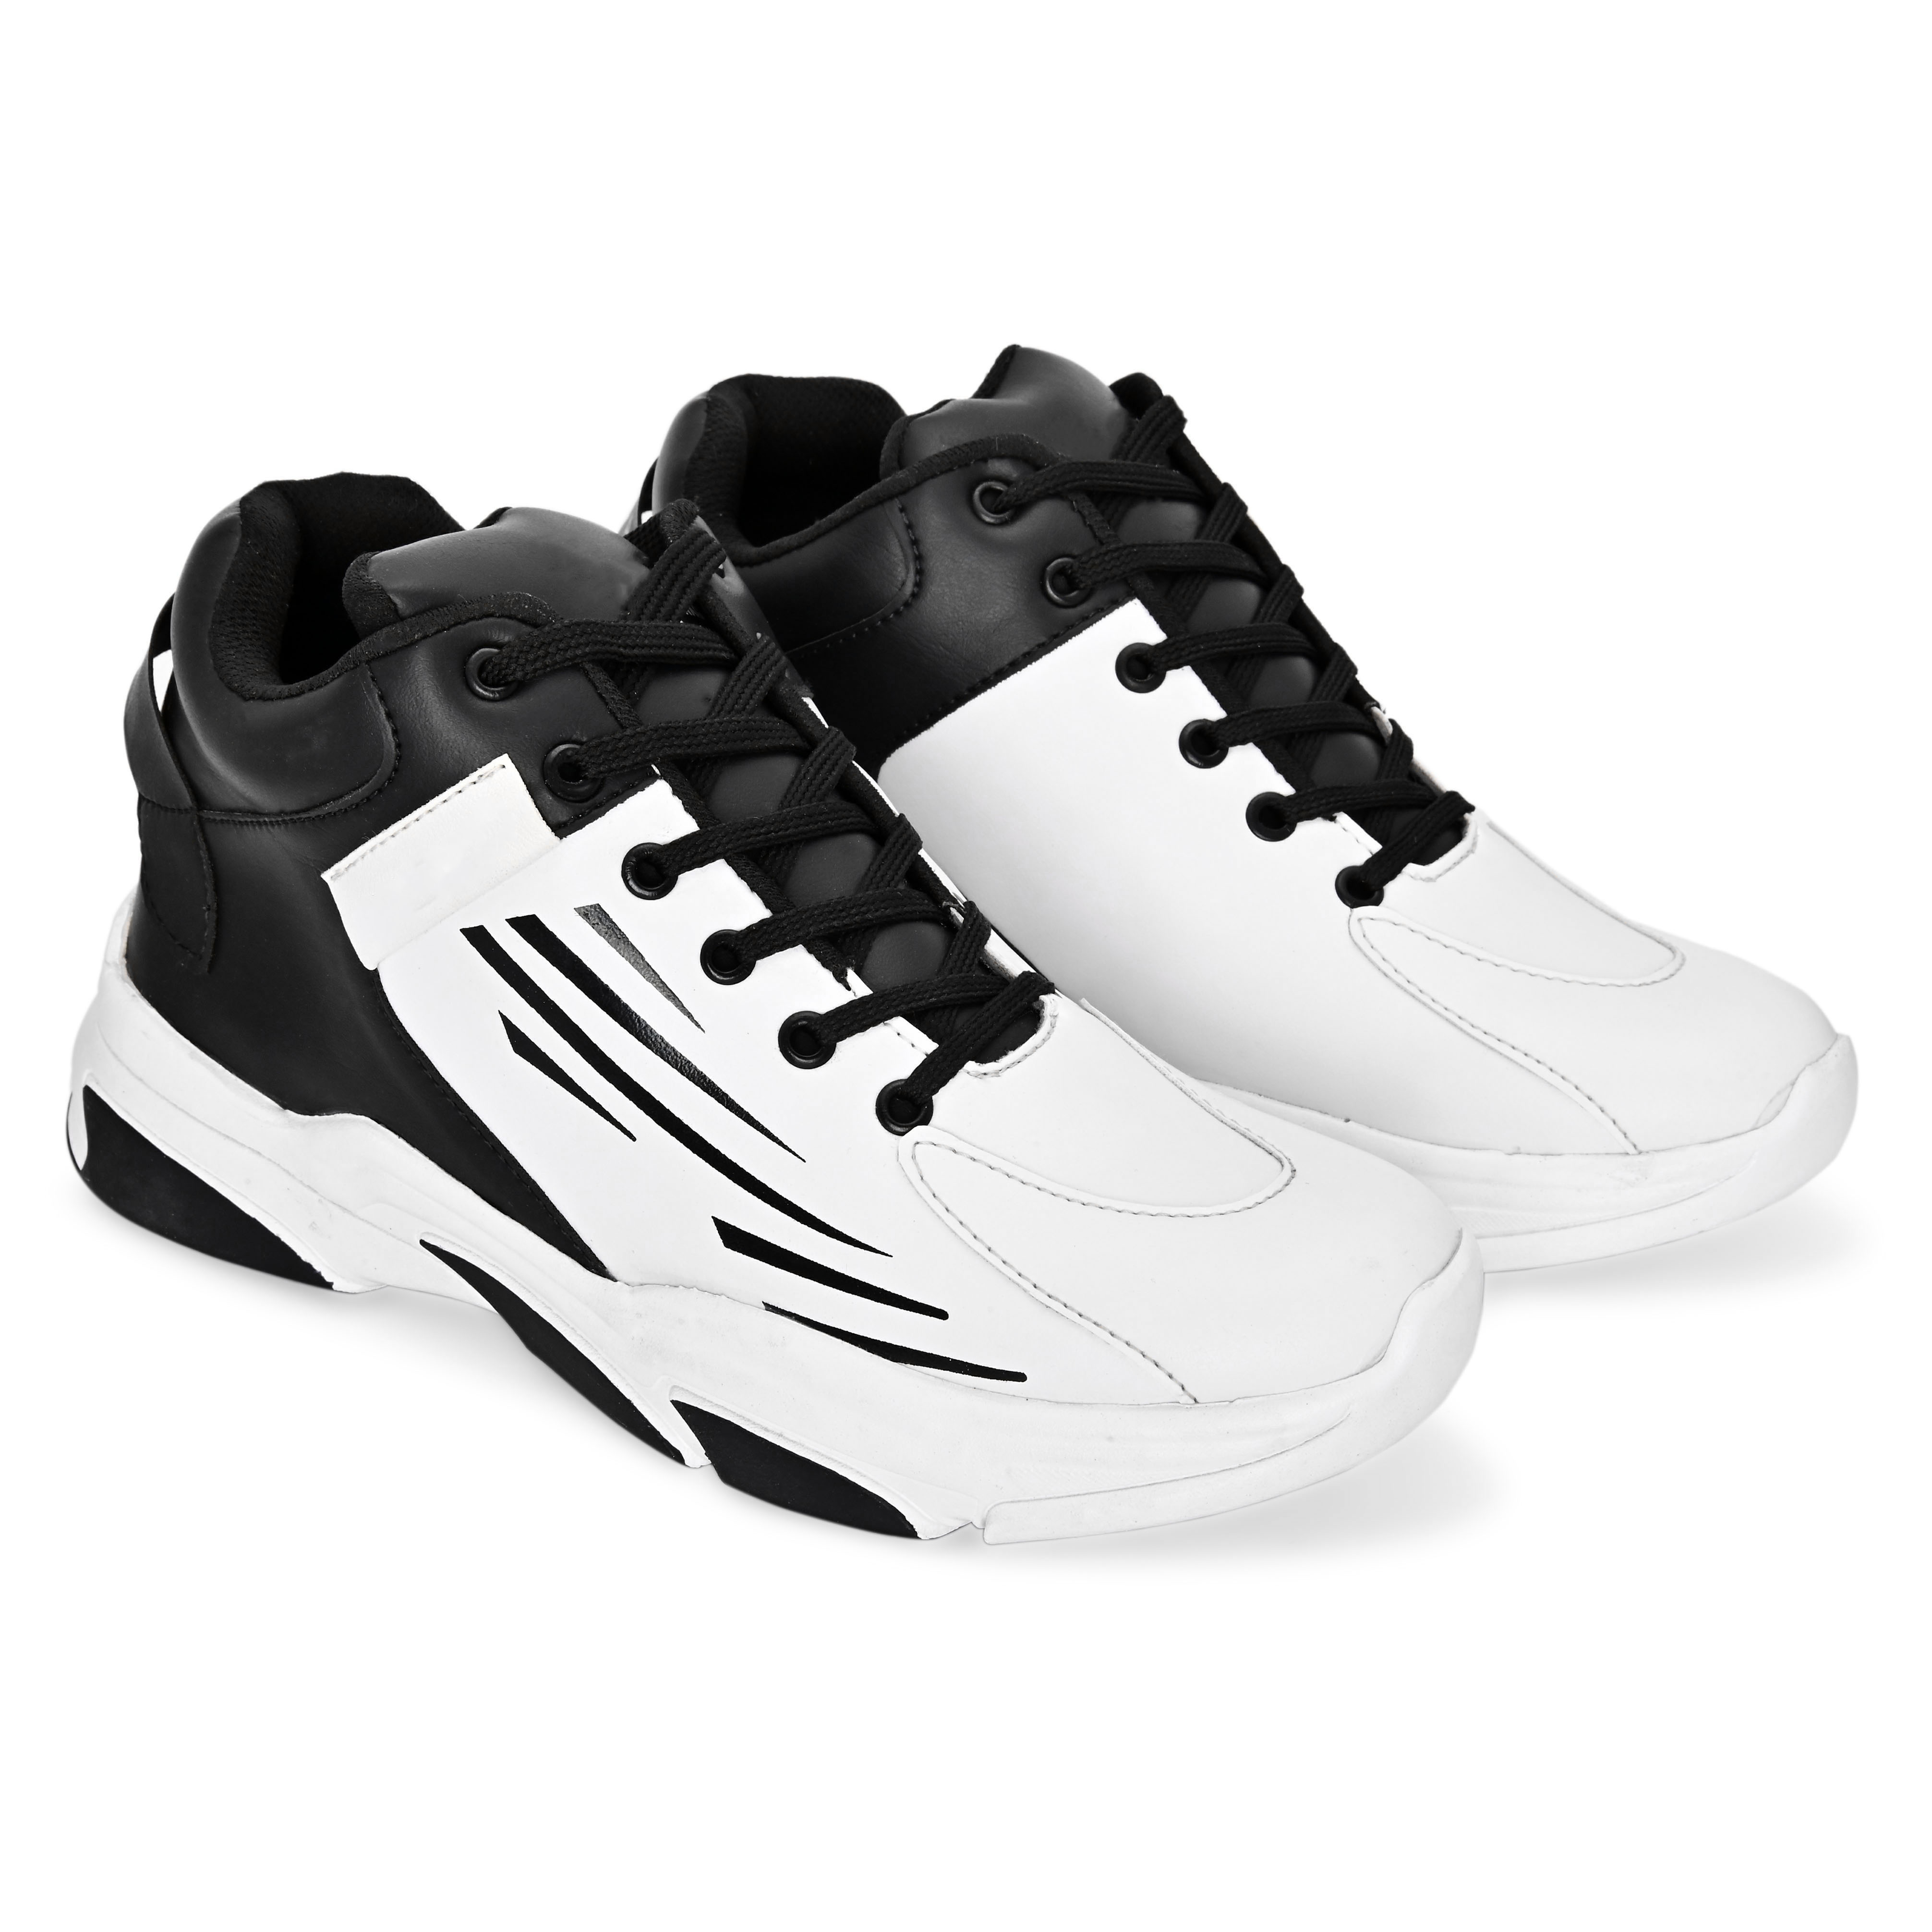 BRIFAR COMFORTABLE & TRENDY SPORTS SHOES ARE RELIABLE FOR ANY BFS0797BLK1 (7-10, BLACK, 4 PAIR)